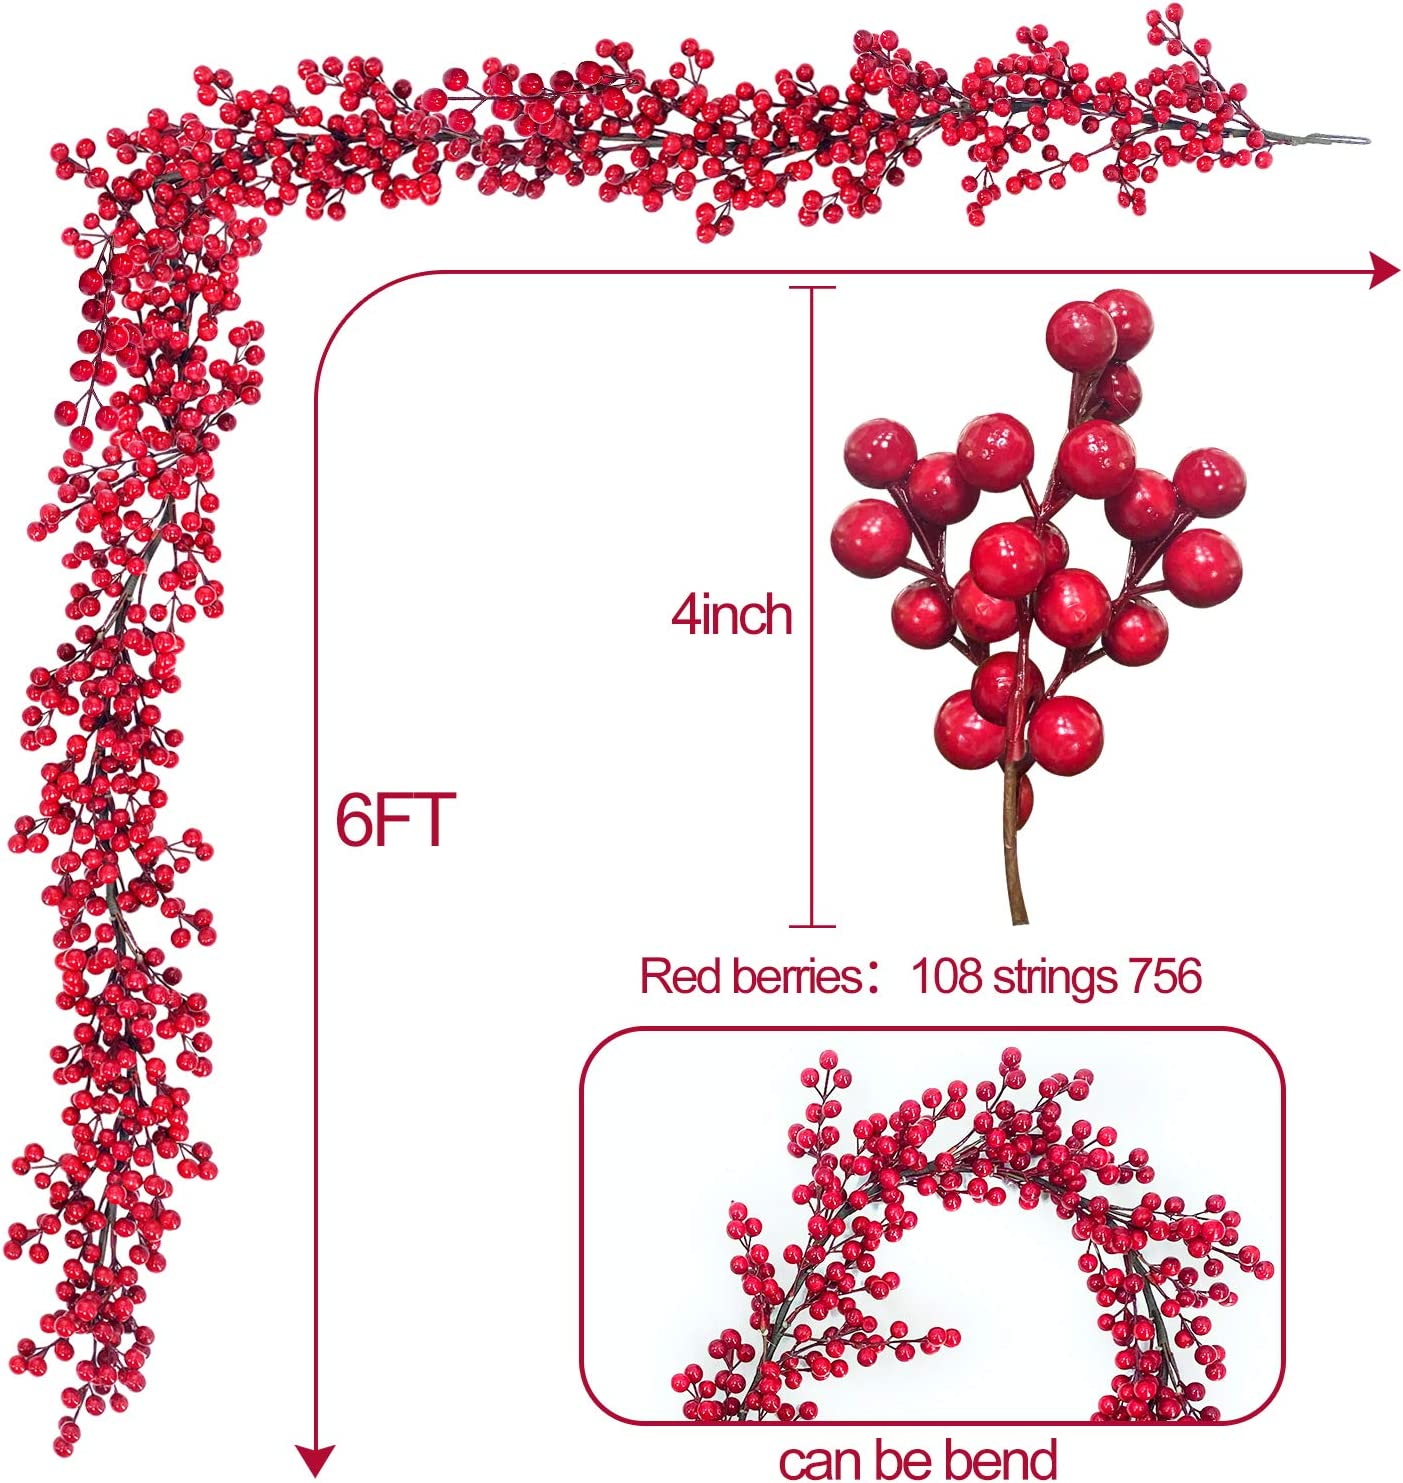 TURNMEON 6 Foot Christmas Red Berry Garland Christmas Decorations Wreath Xmas Decoration Indoor Outdoor Home Mantle Fireplace Holiday Christmas Tree Decor